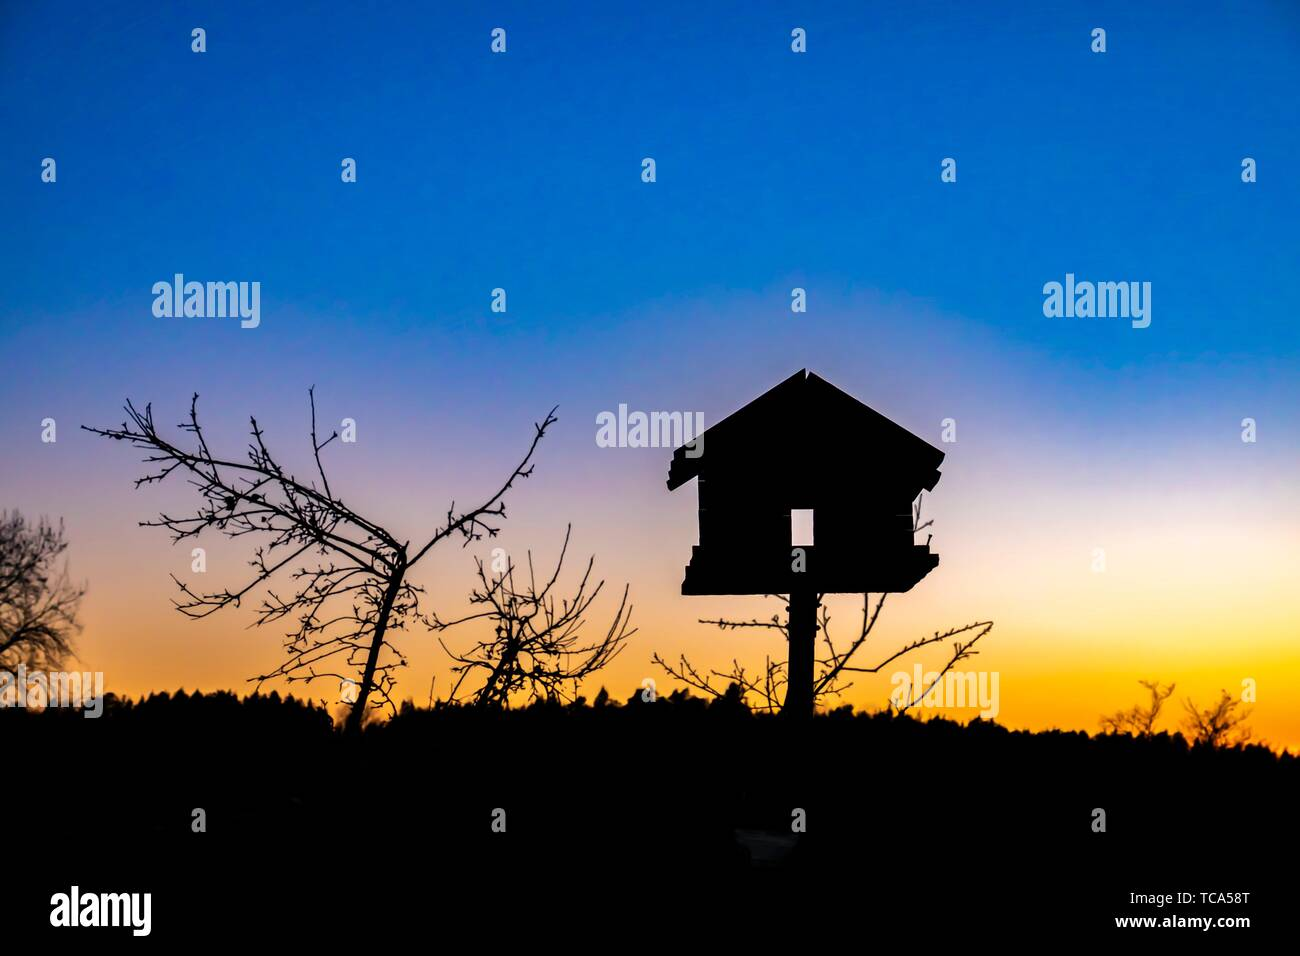 Bird house at sunset in Sweden. - Stock Image